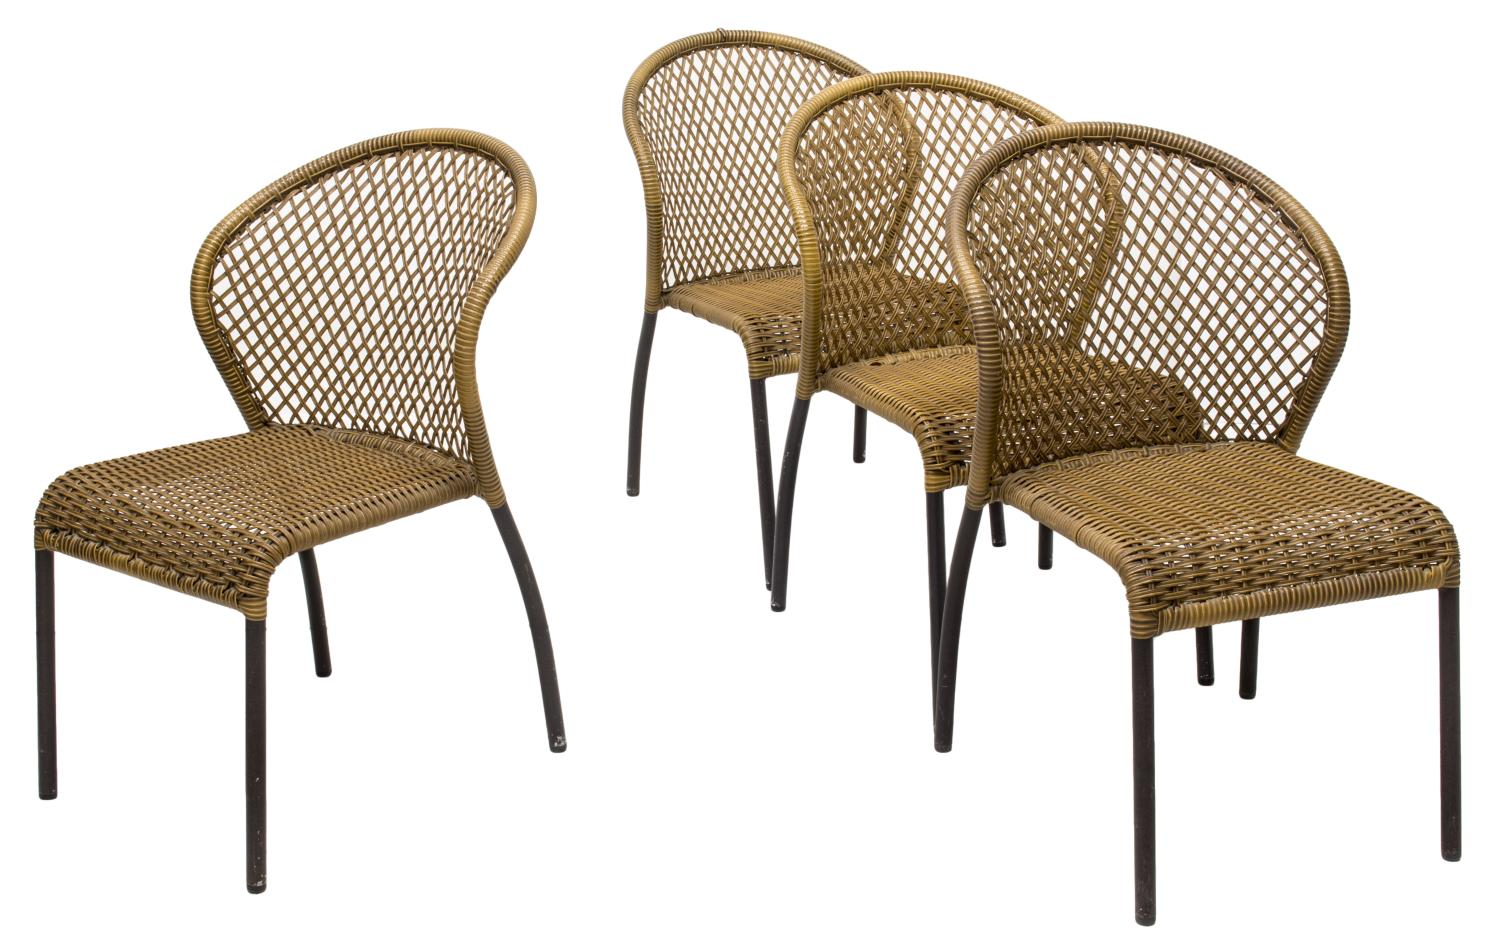 4 faux wicker patio chairs luxury estates aucton day